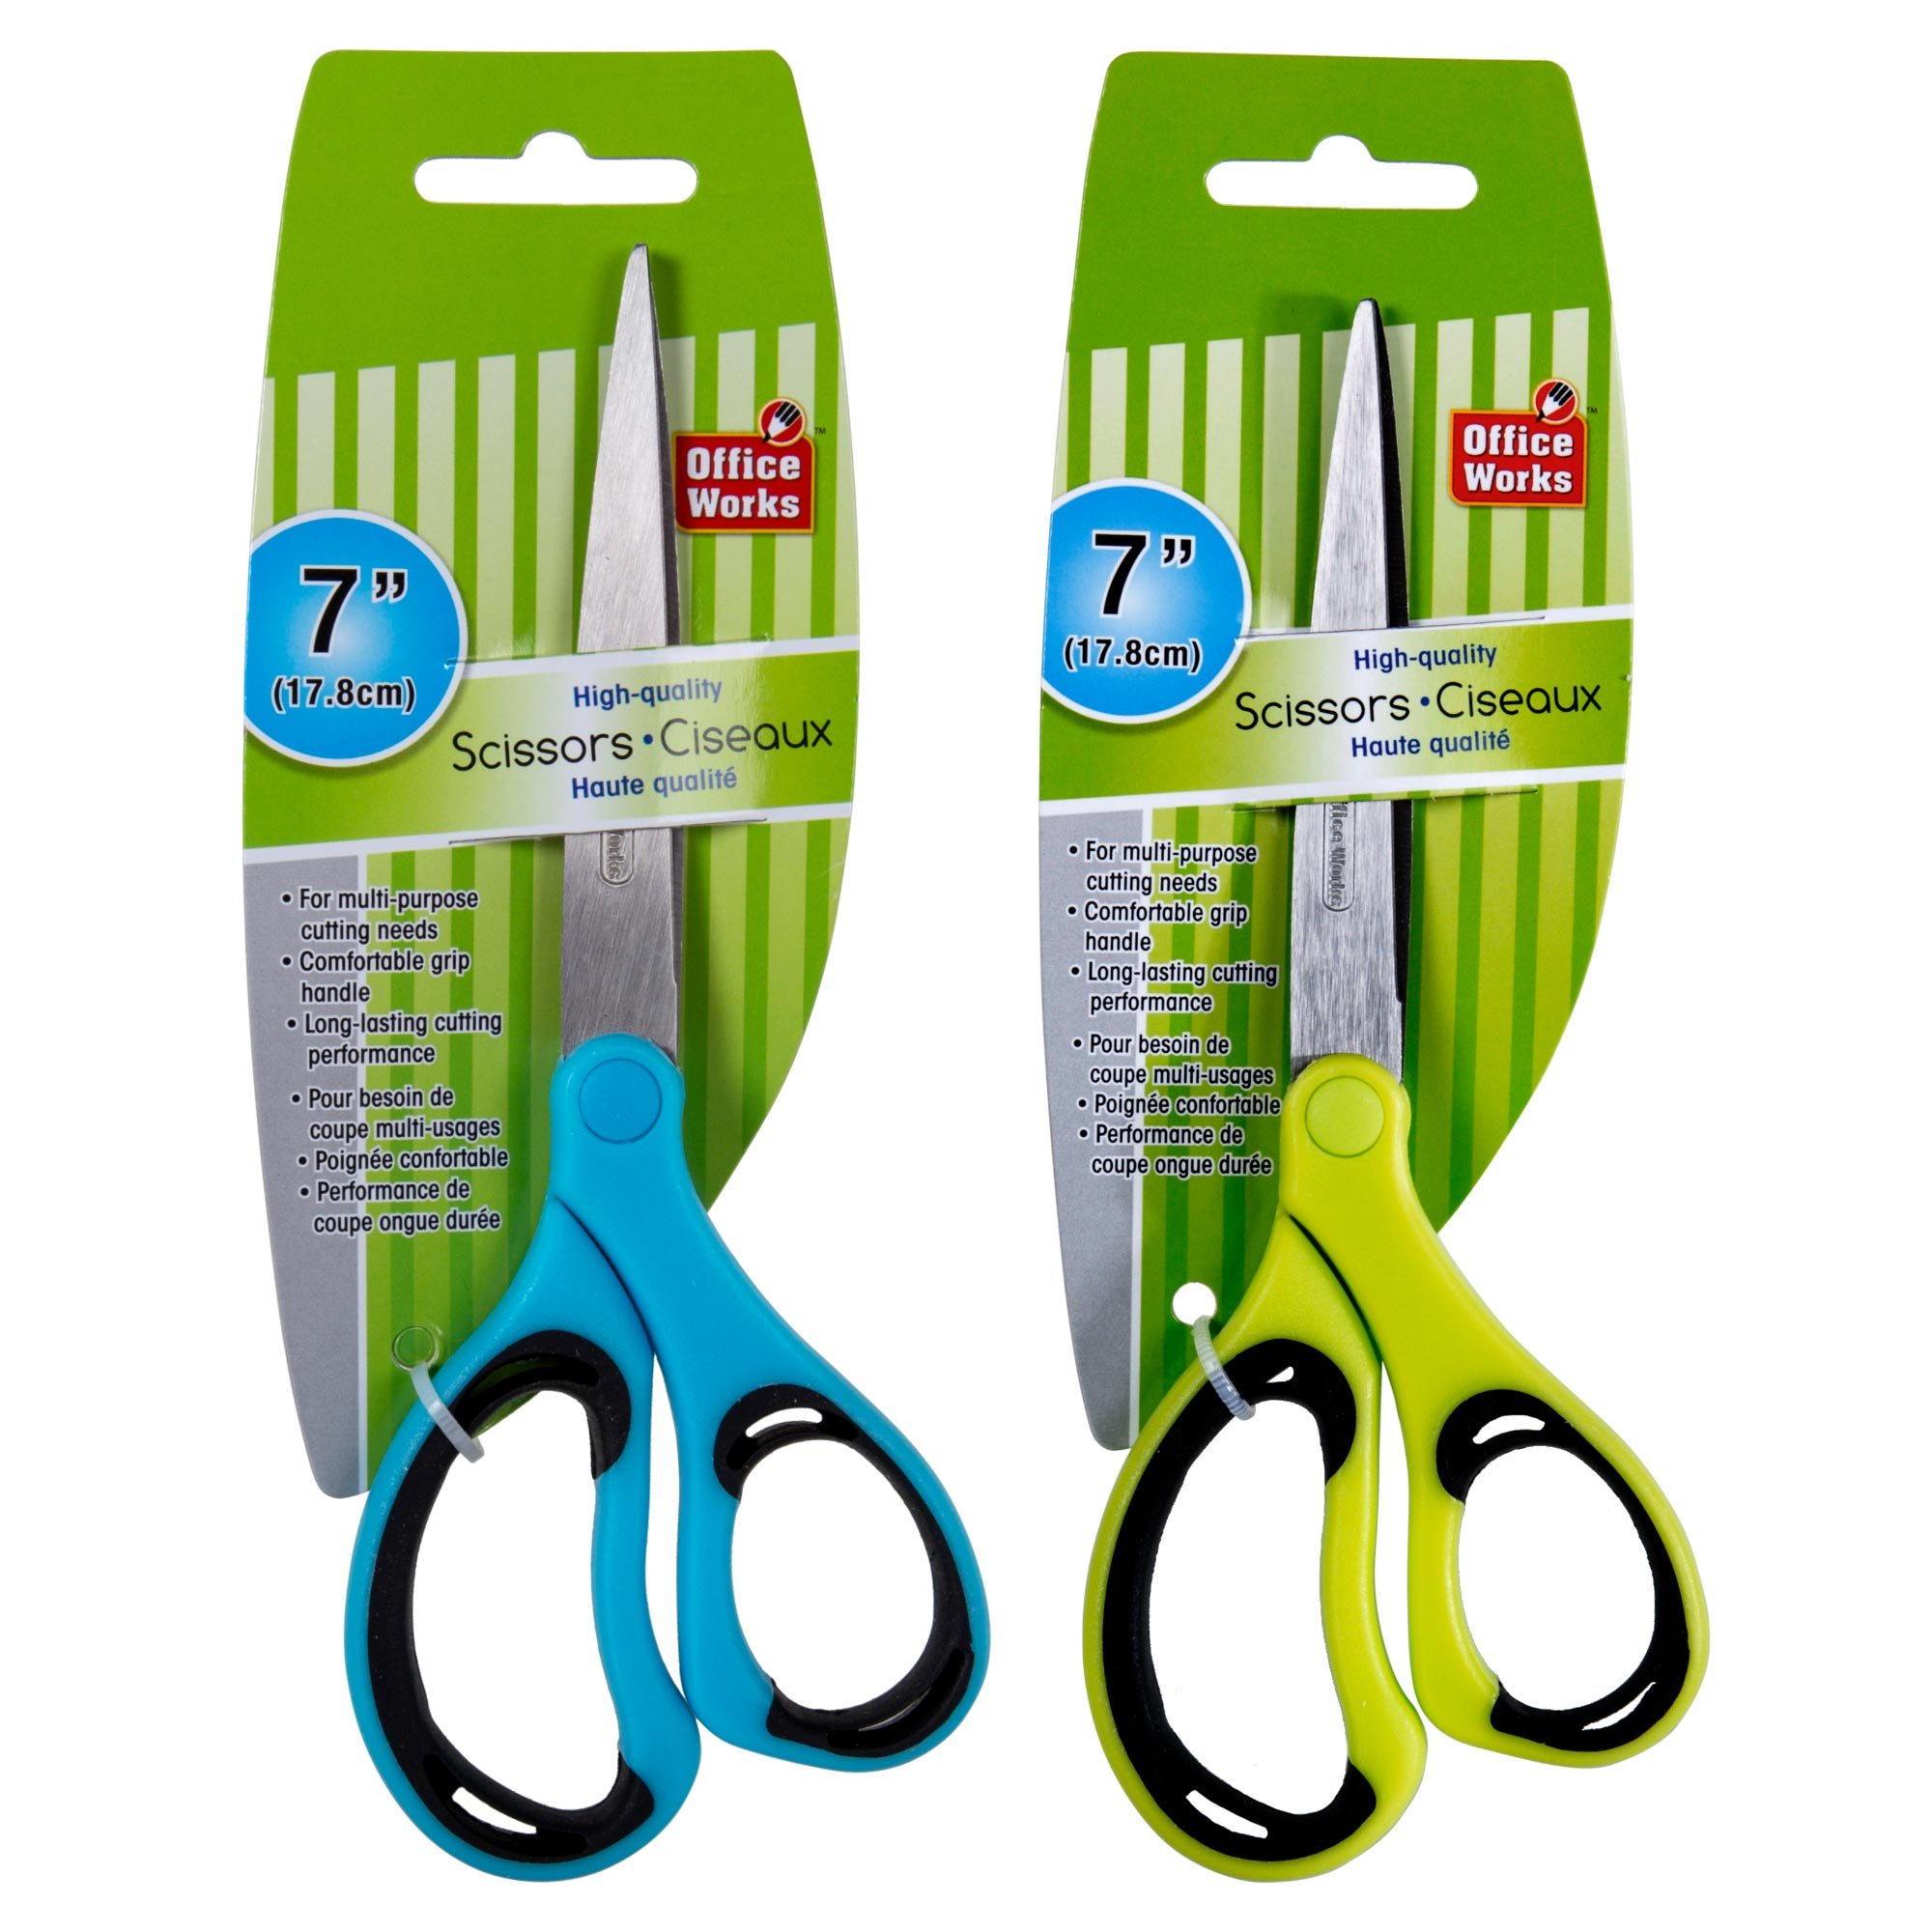 Office Works, Premium Quality Scissors, 7 inches, Blue, Green, 12 Pieces by OfficeWorks (Image #2)